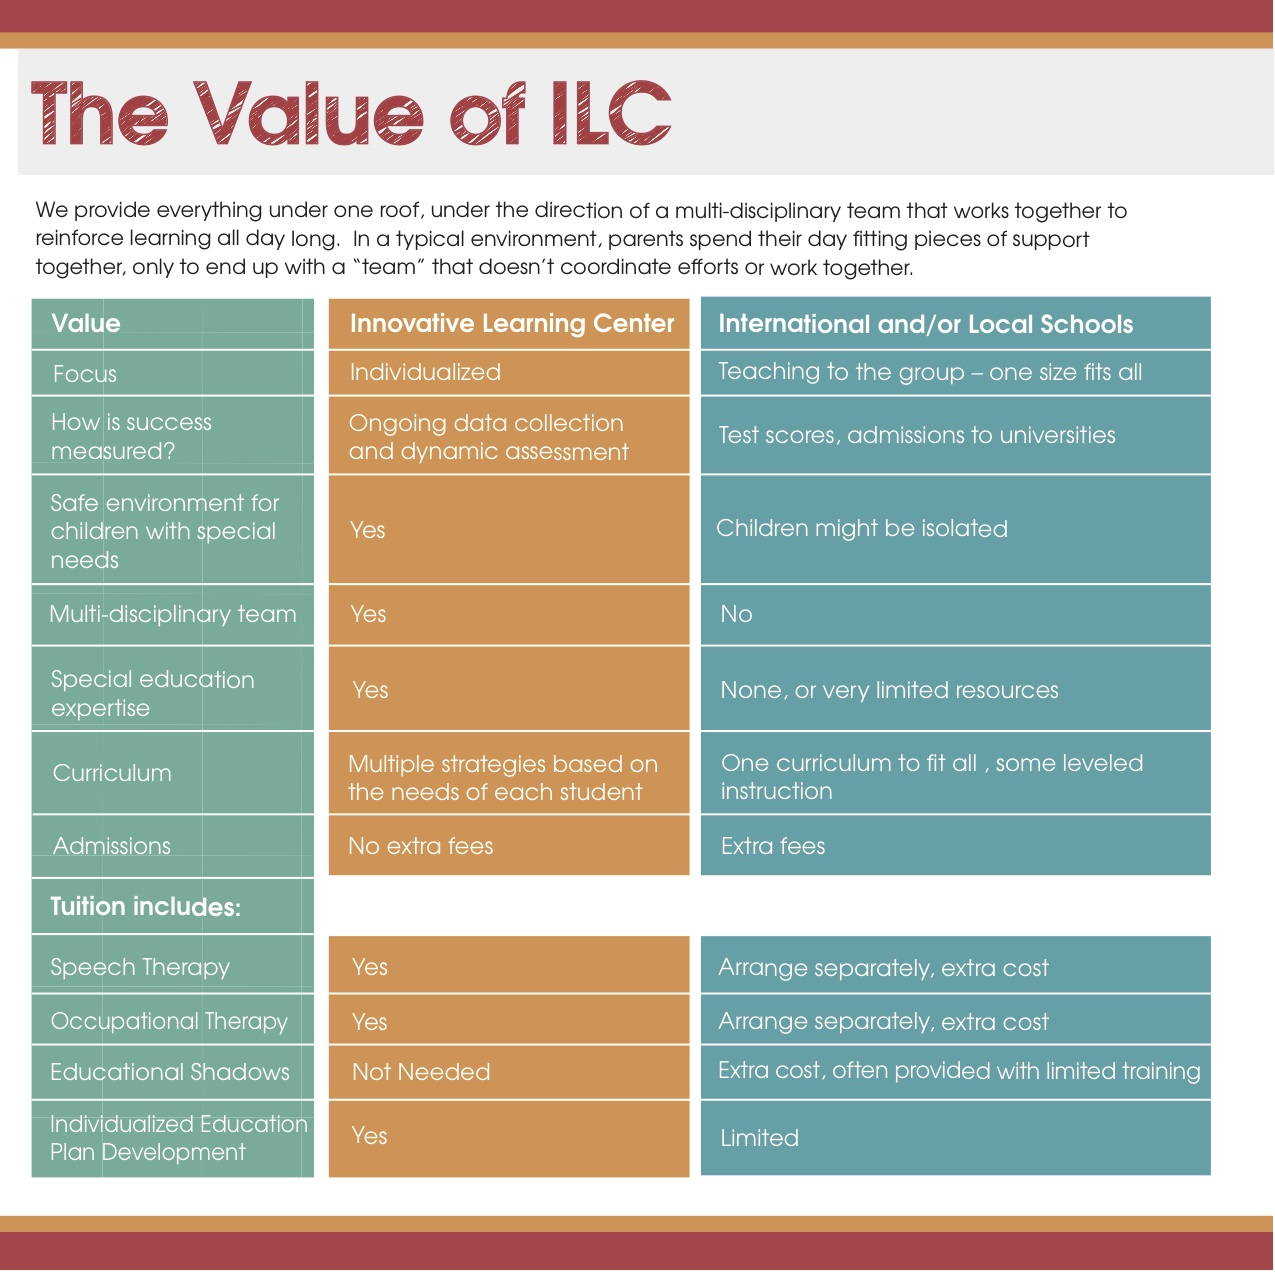 value of ILC_website removed